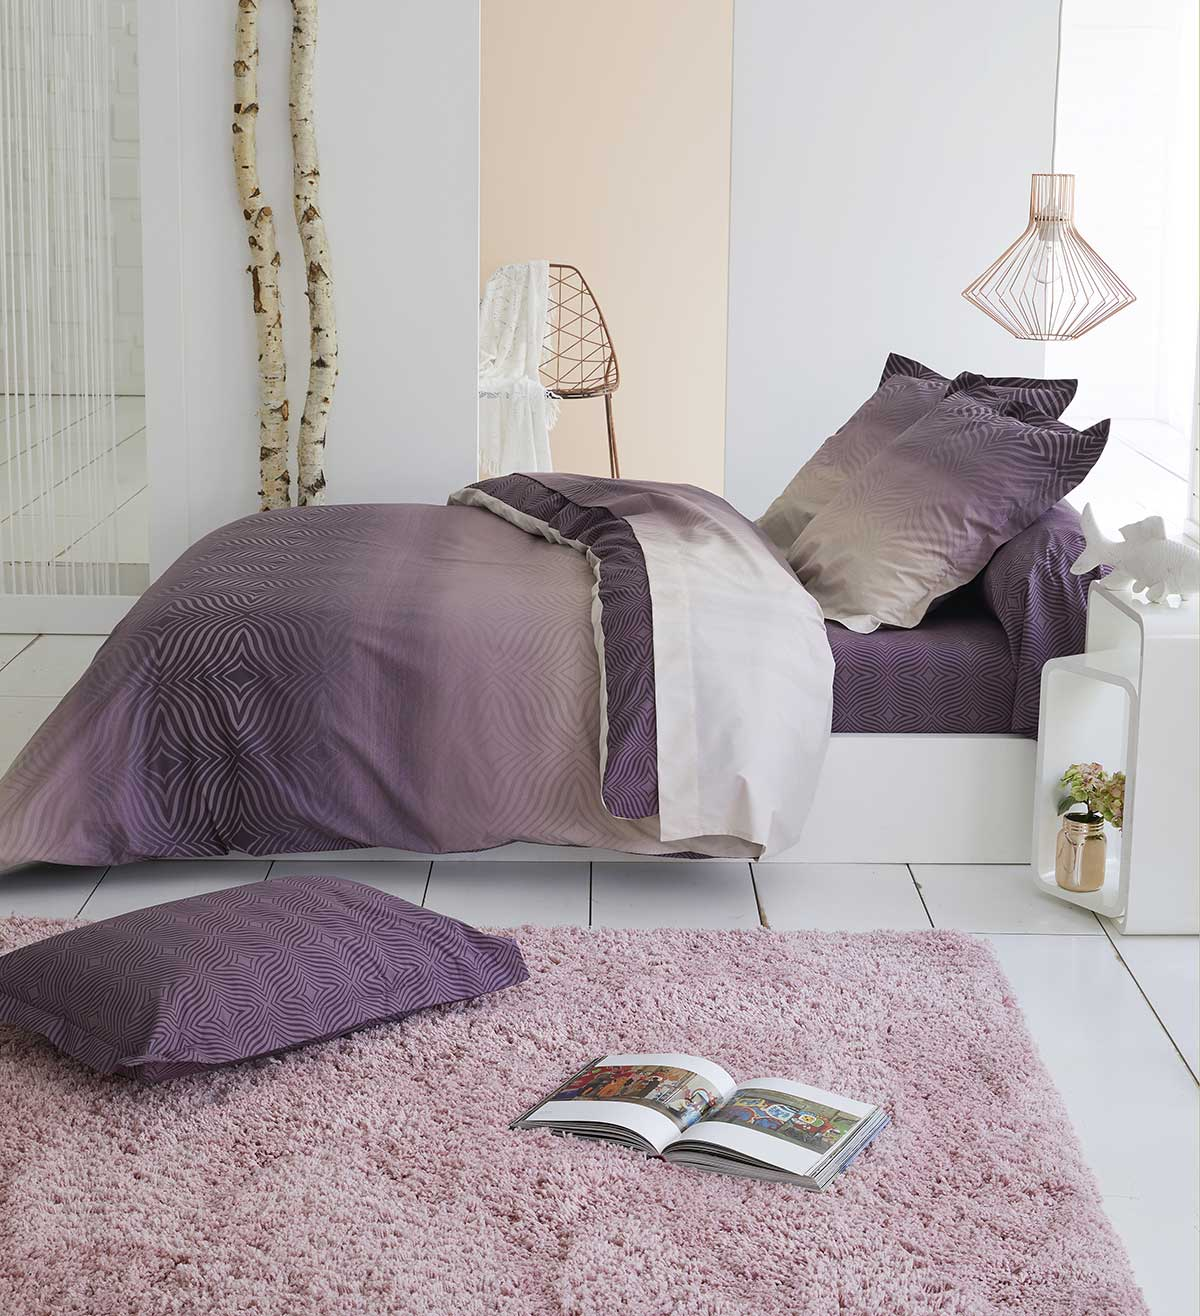 housse de couette en percale prune prune homemaison vente en ligne housses de couettes. Black Bedroom Furniture Sets. Home Design Ideas